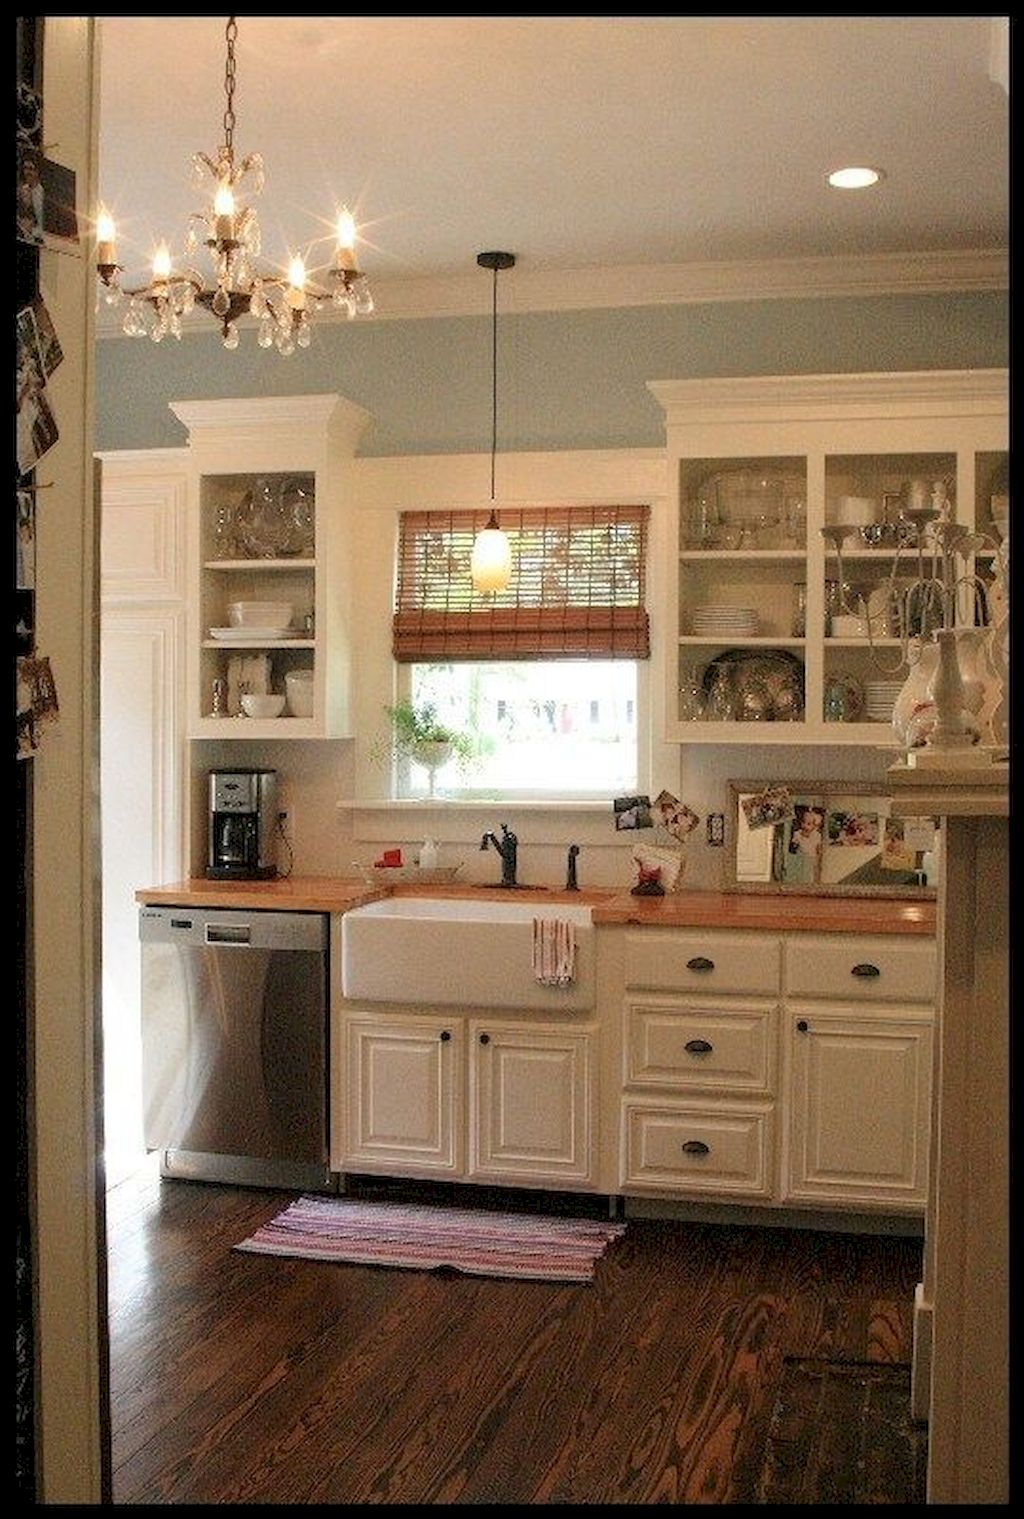 Kitchen Plan And Design For Small Room (42)